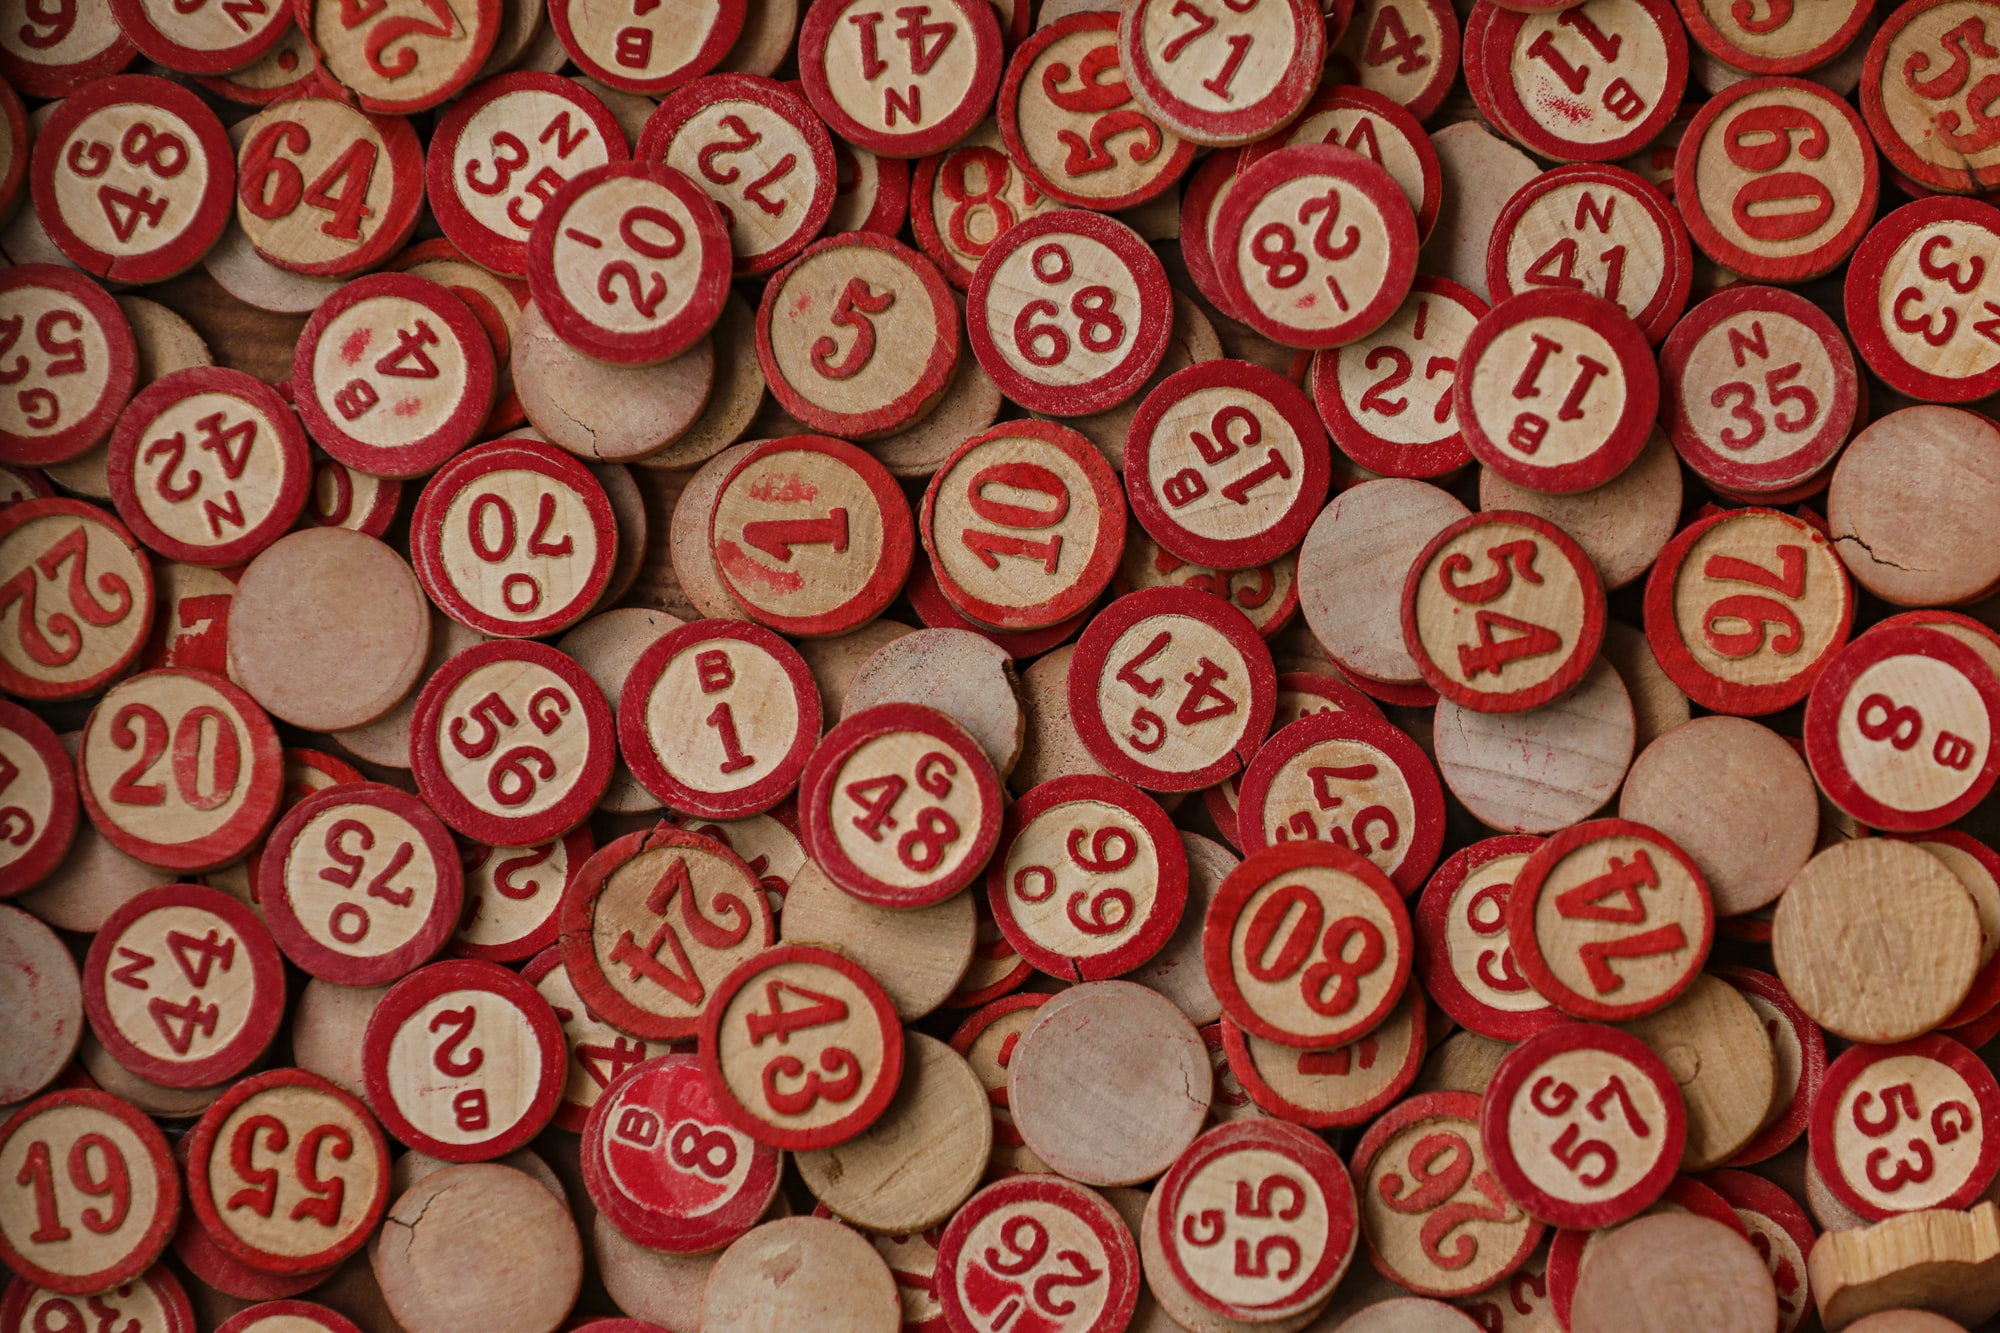 Old Bingo tiles found in my grandfathers house. Knew these would come in handy some day. BINGO!